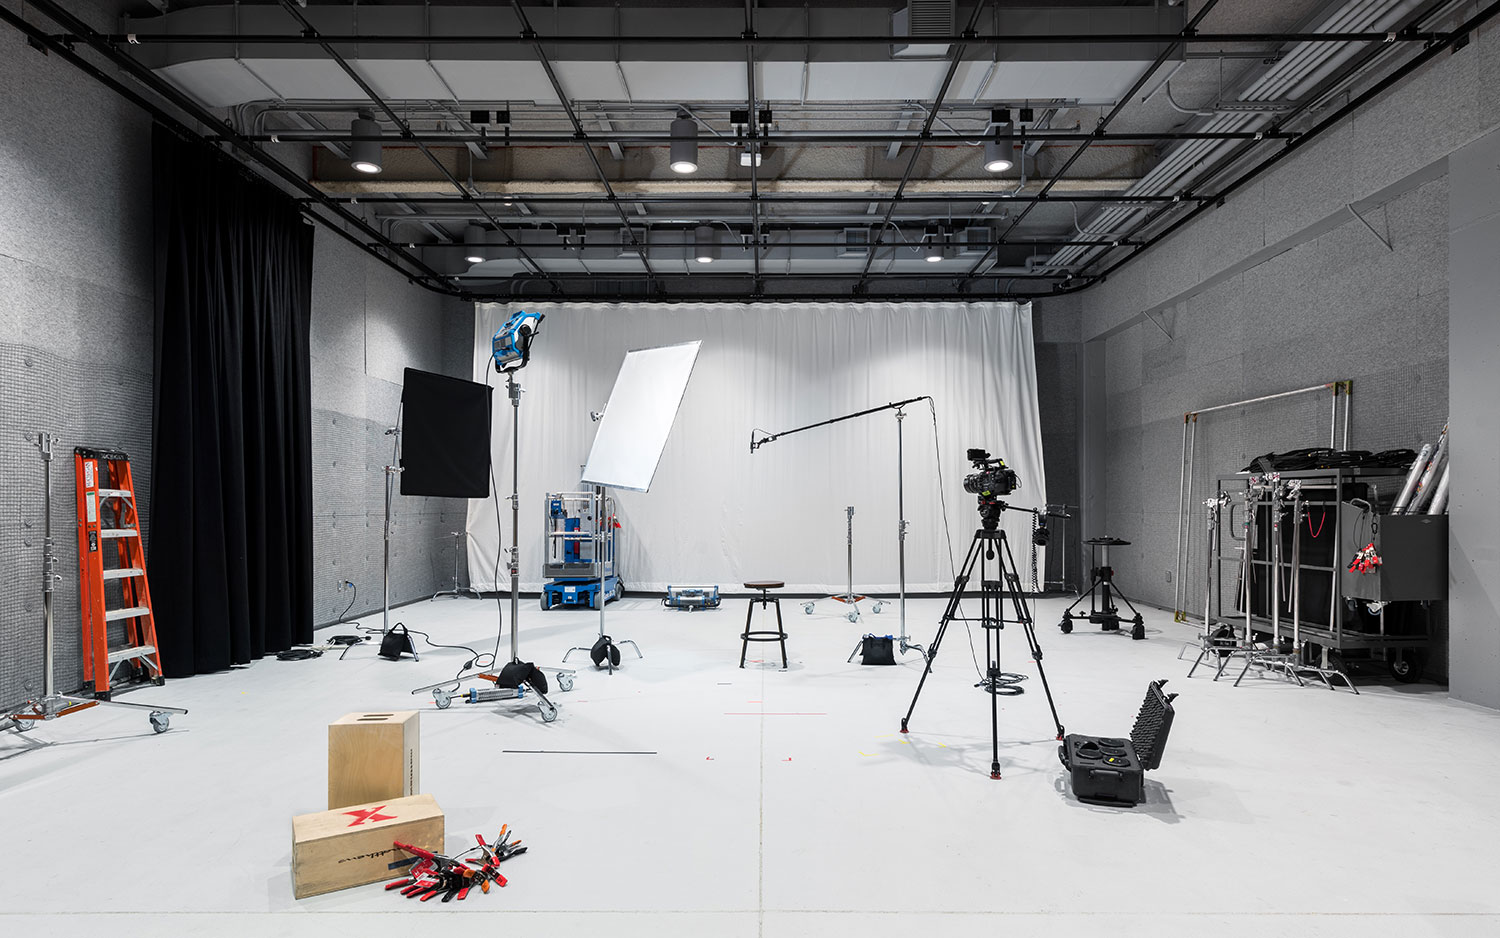 Soundstage — Black Box Studio for Full Scale Video Production